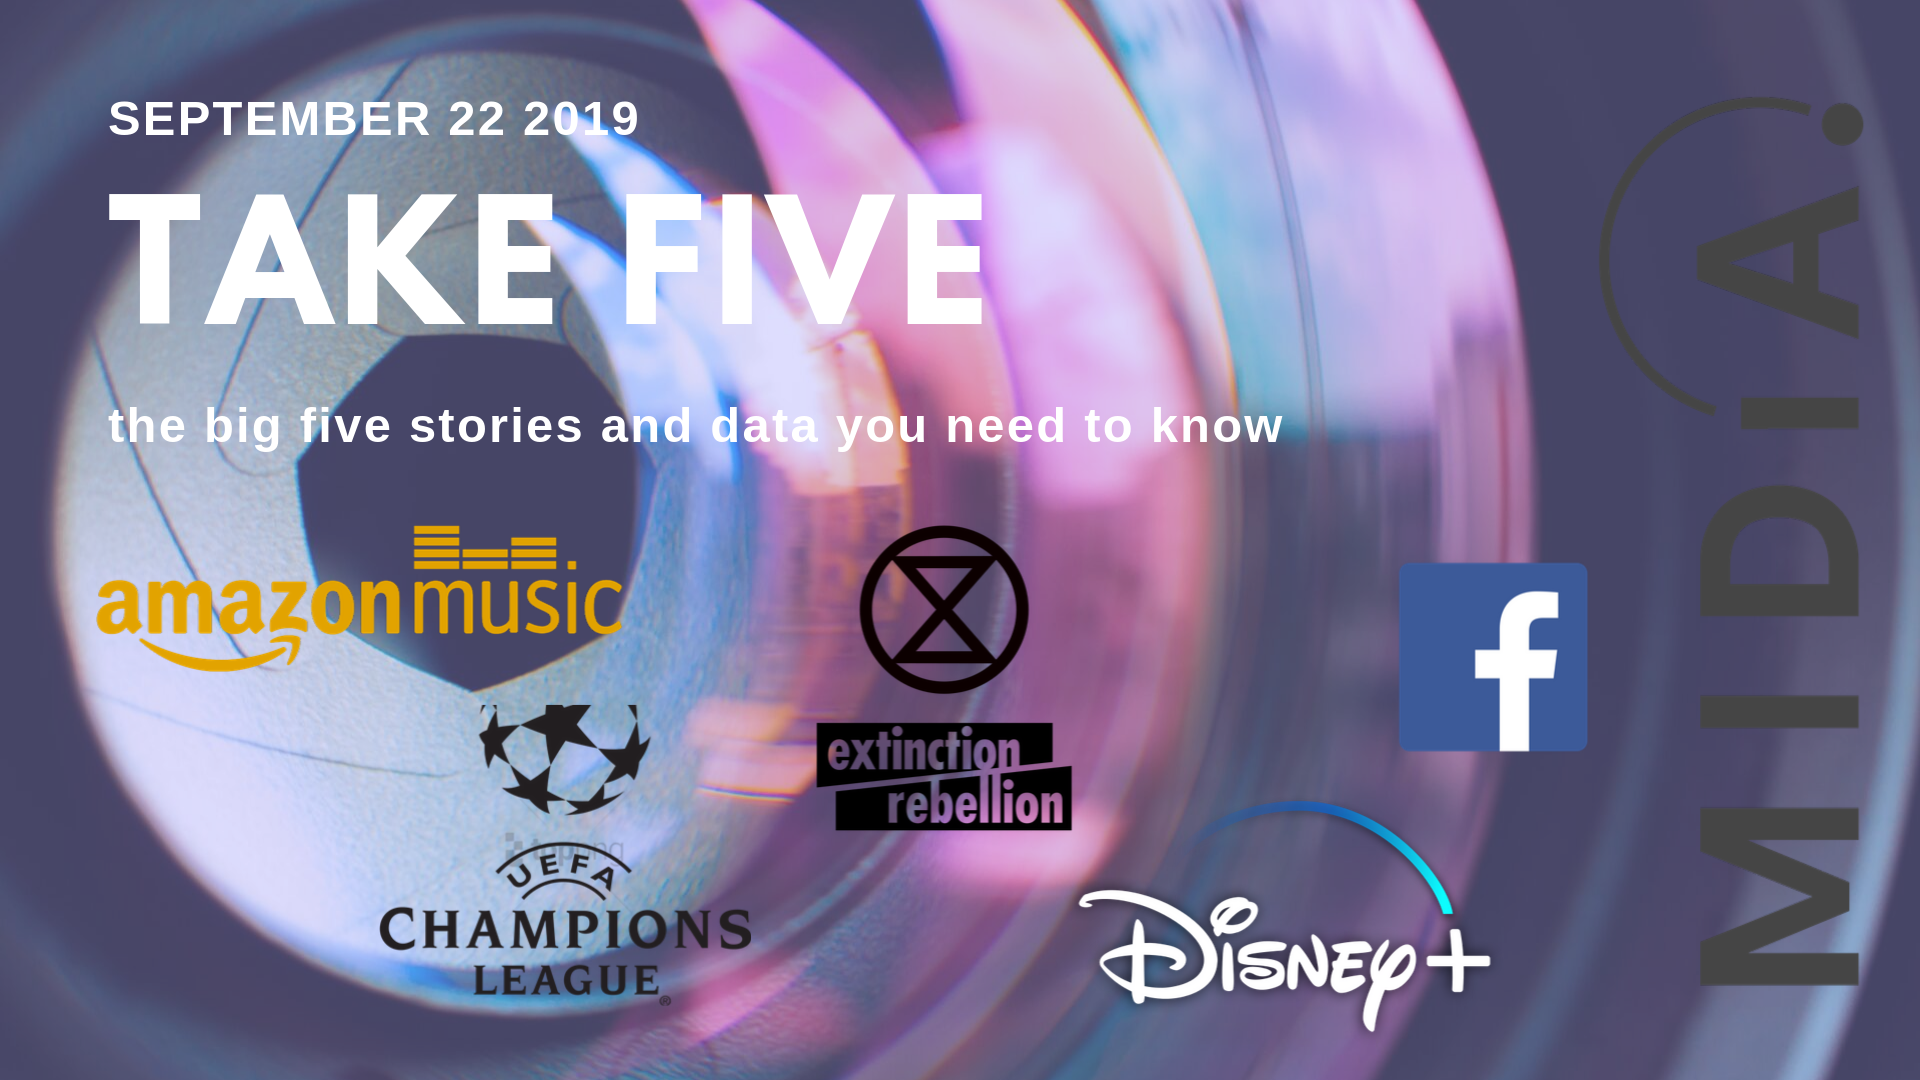 Cover image for Take Five (the big five stories and data you need to know) September 22nd 2019